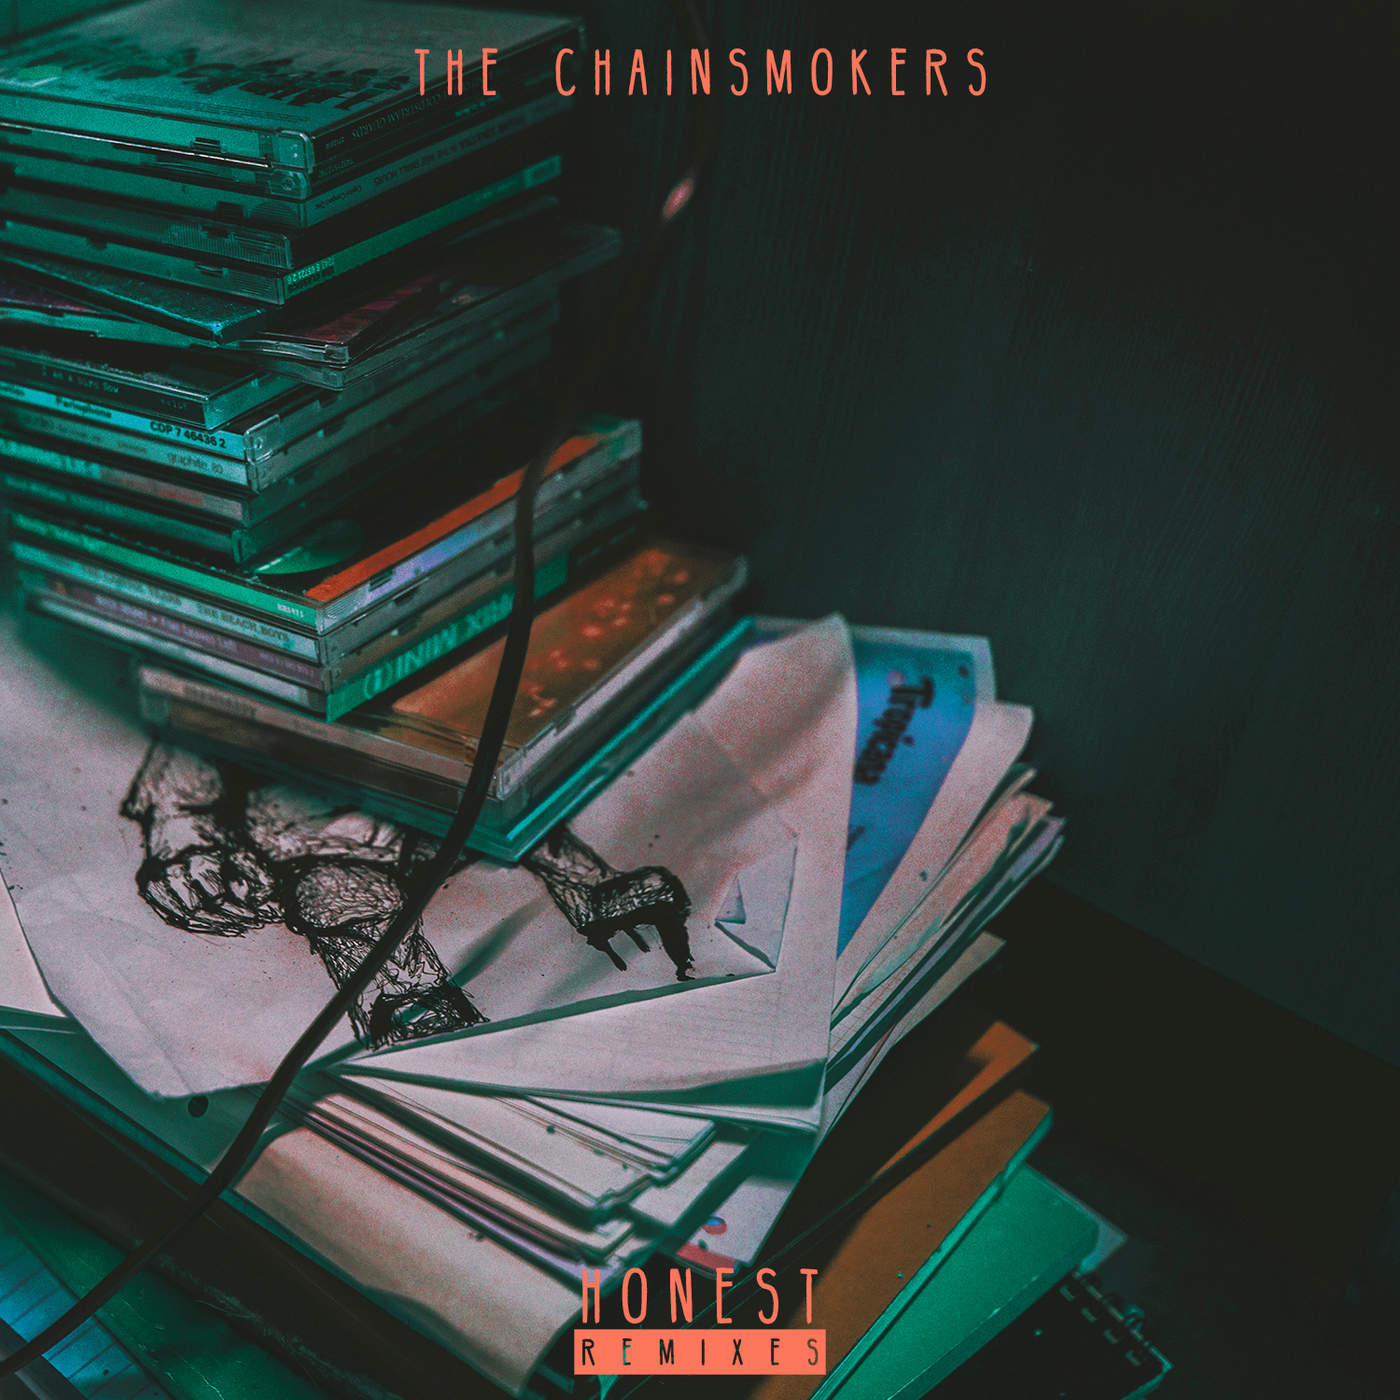 the chainsmokers collage spotify